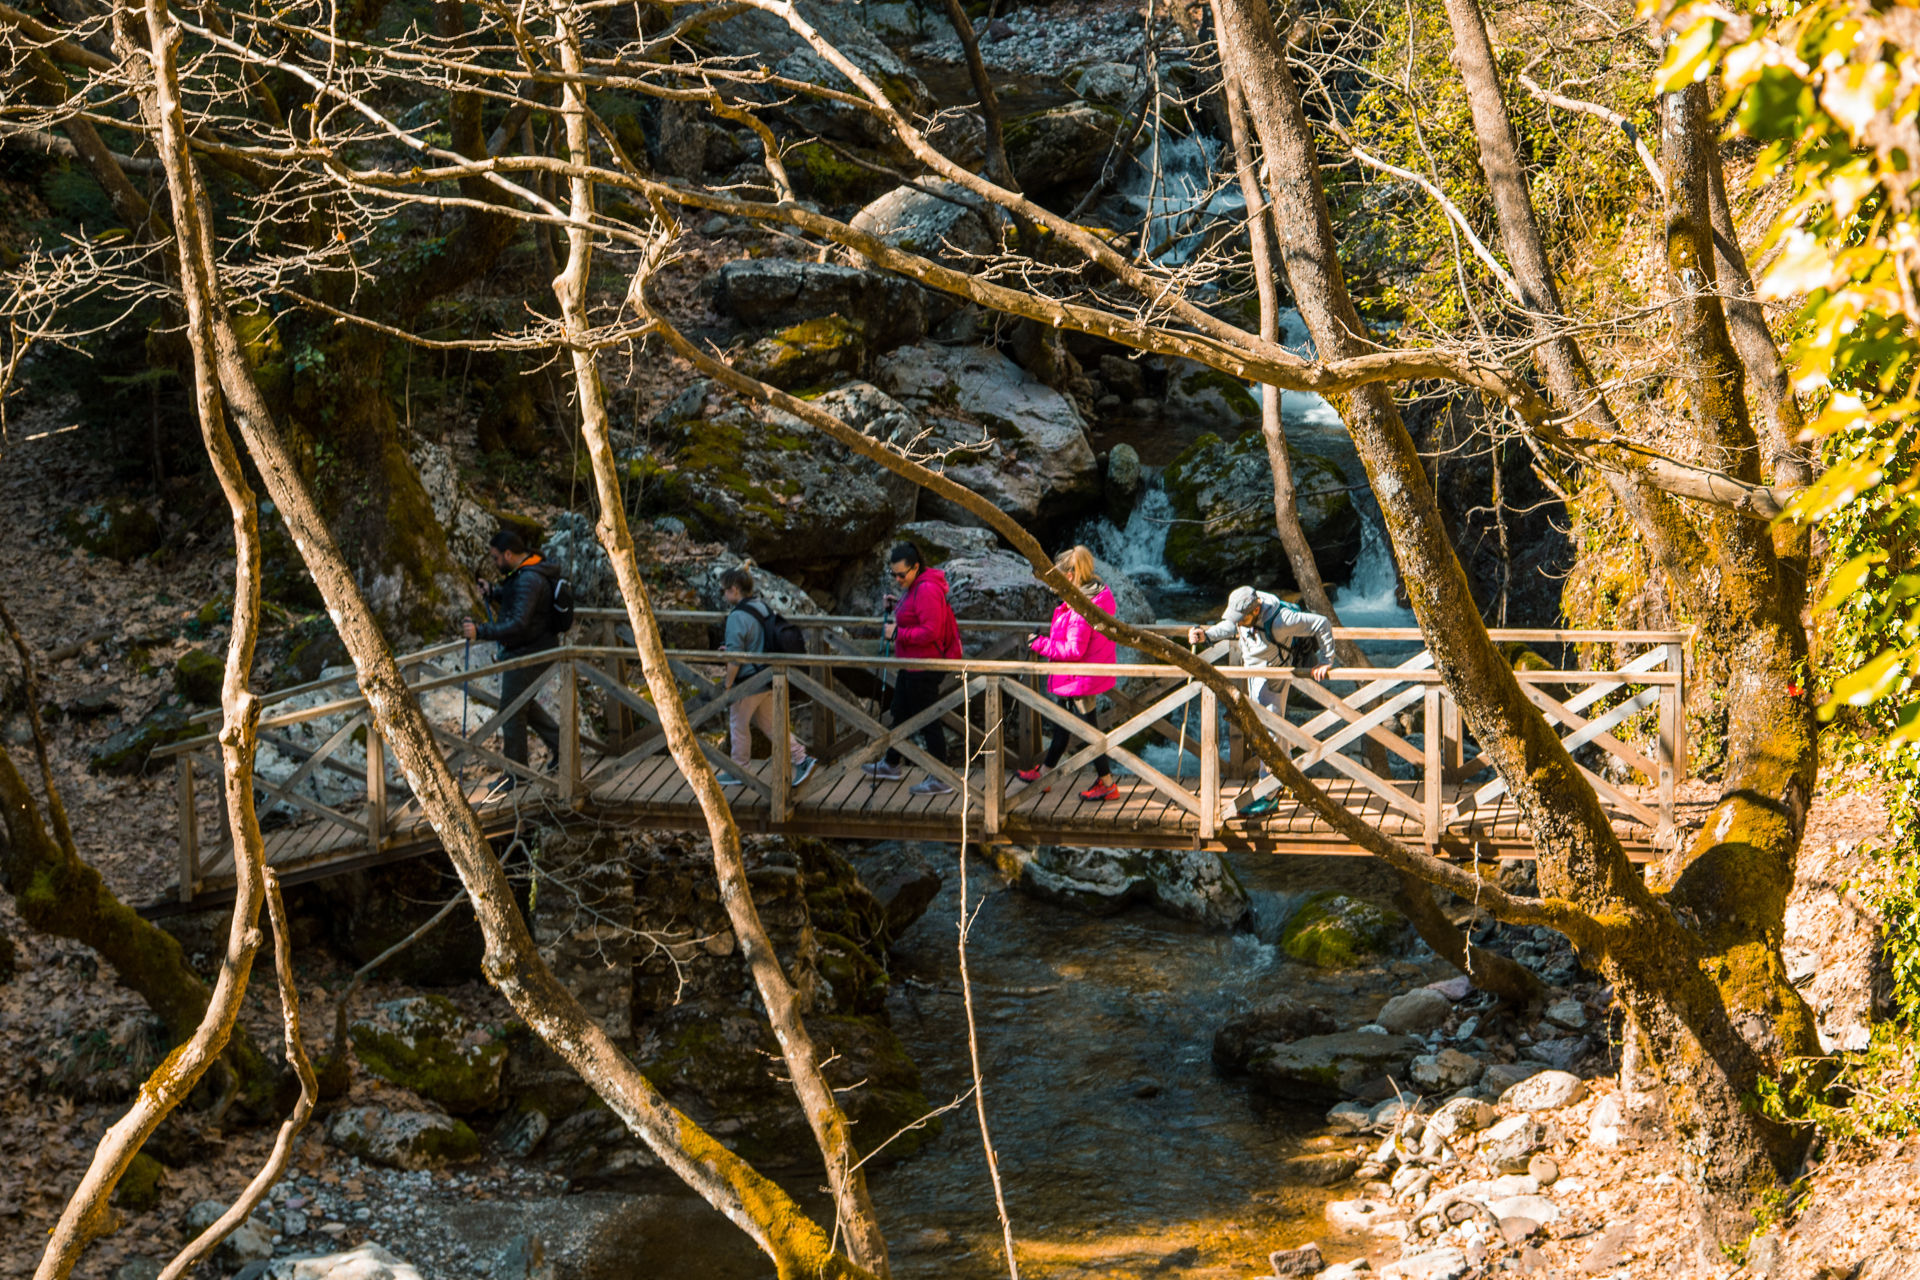 Via Ferrata, Trek across wooden bridges and past little waterfalls